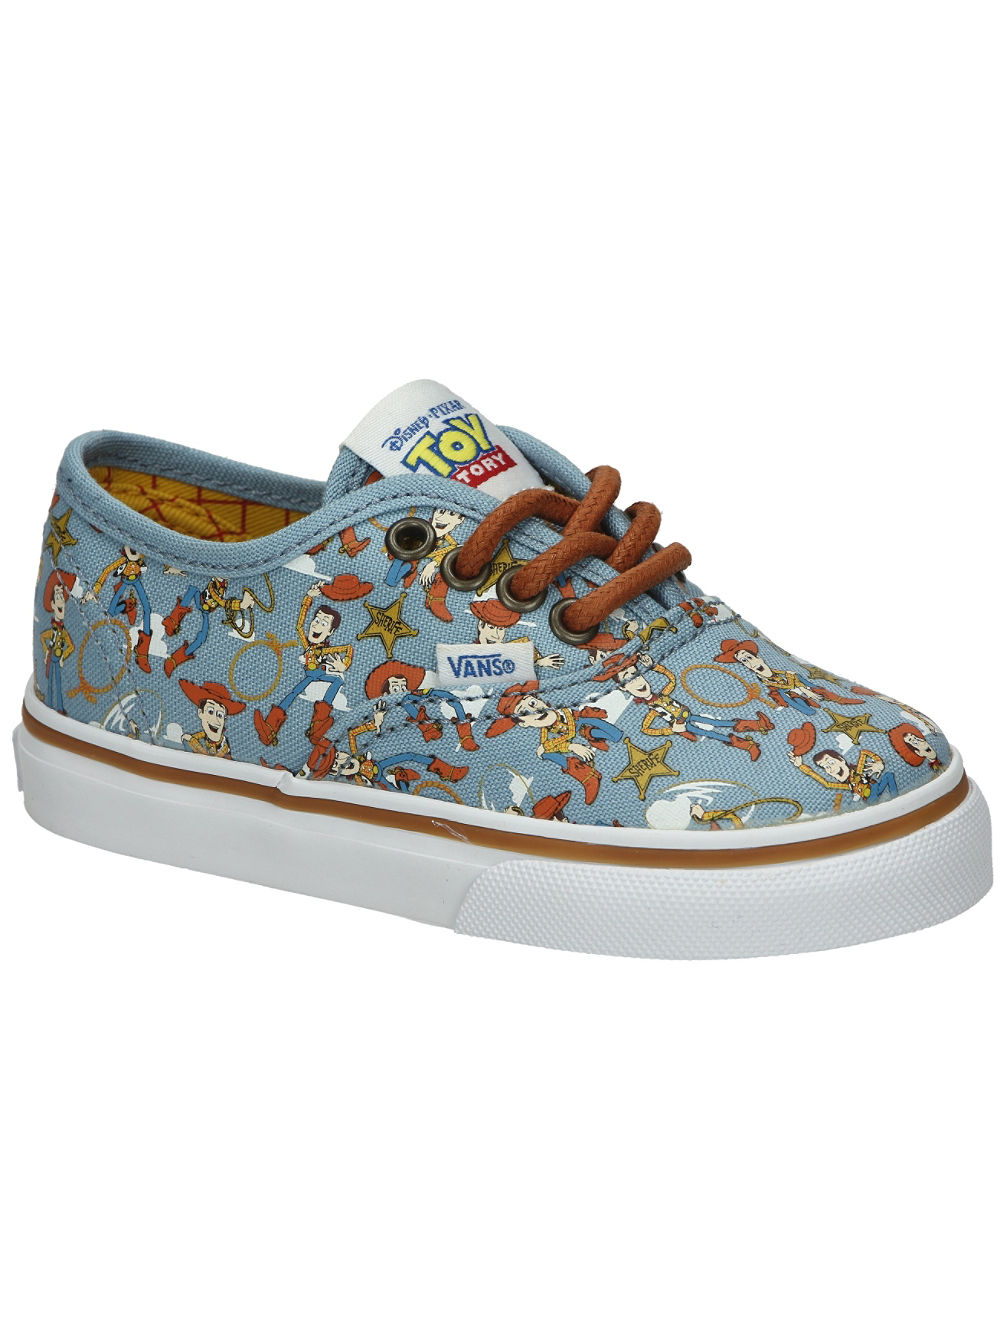 5d35efb7f01 Buy Vans Authentic Toy Story Sneakers Toddlers online at Blue Tomato